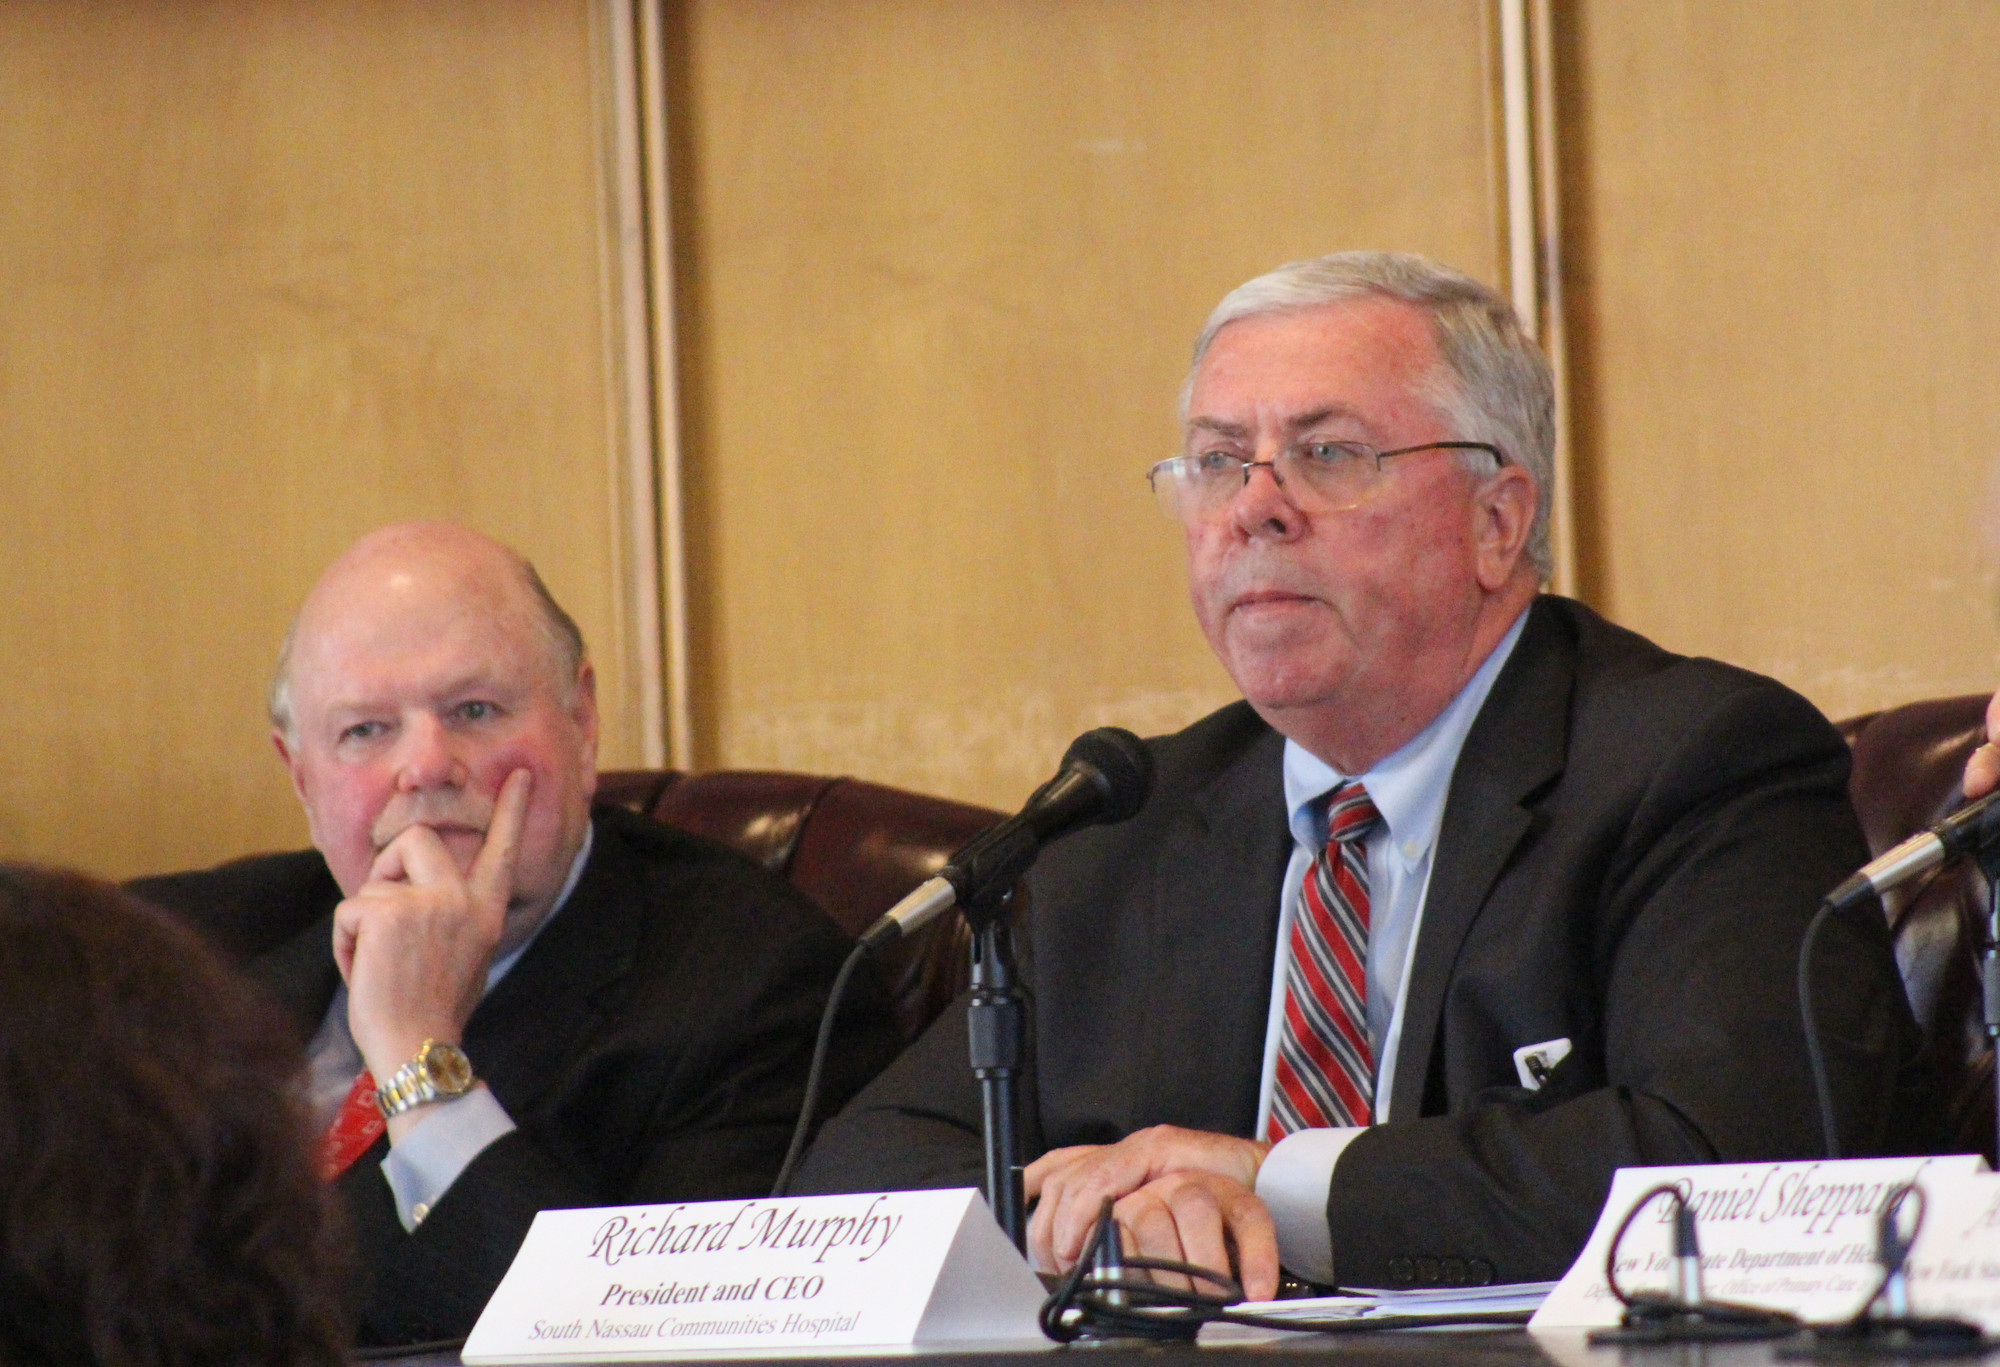 Joseph Fennessy, left, chairman of South Nassau's Board of Directors, and SNCH's President and CEO Richard Murphy listened to nearly 50 residents make their case for a full-service hospital in Long Beach.